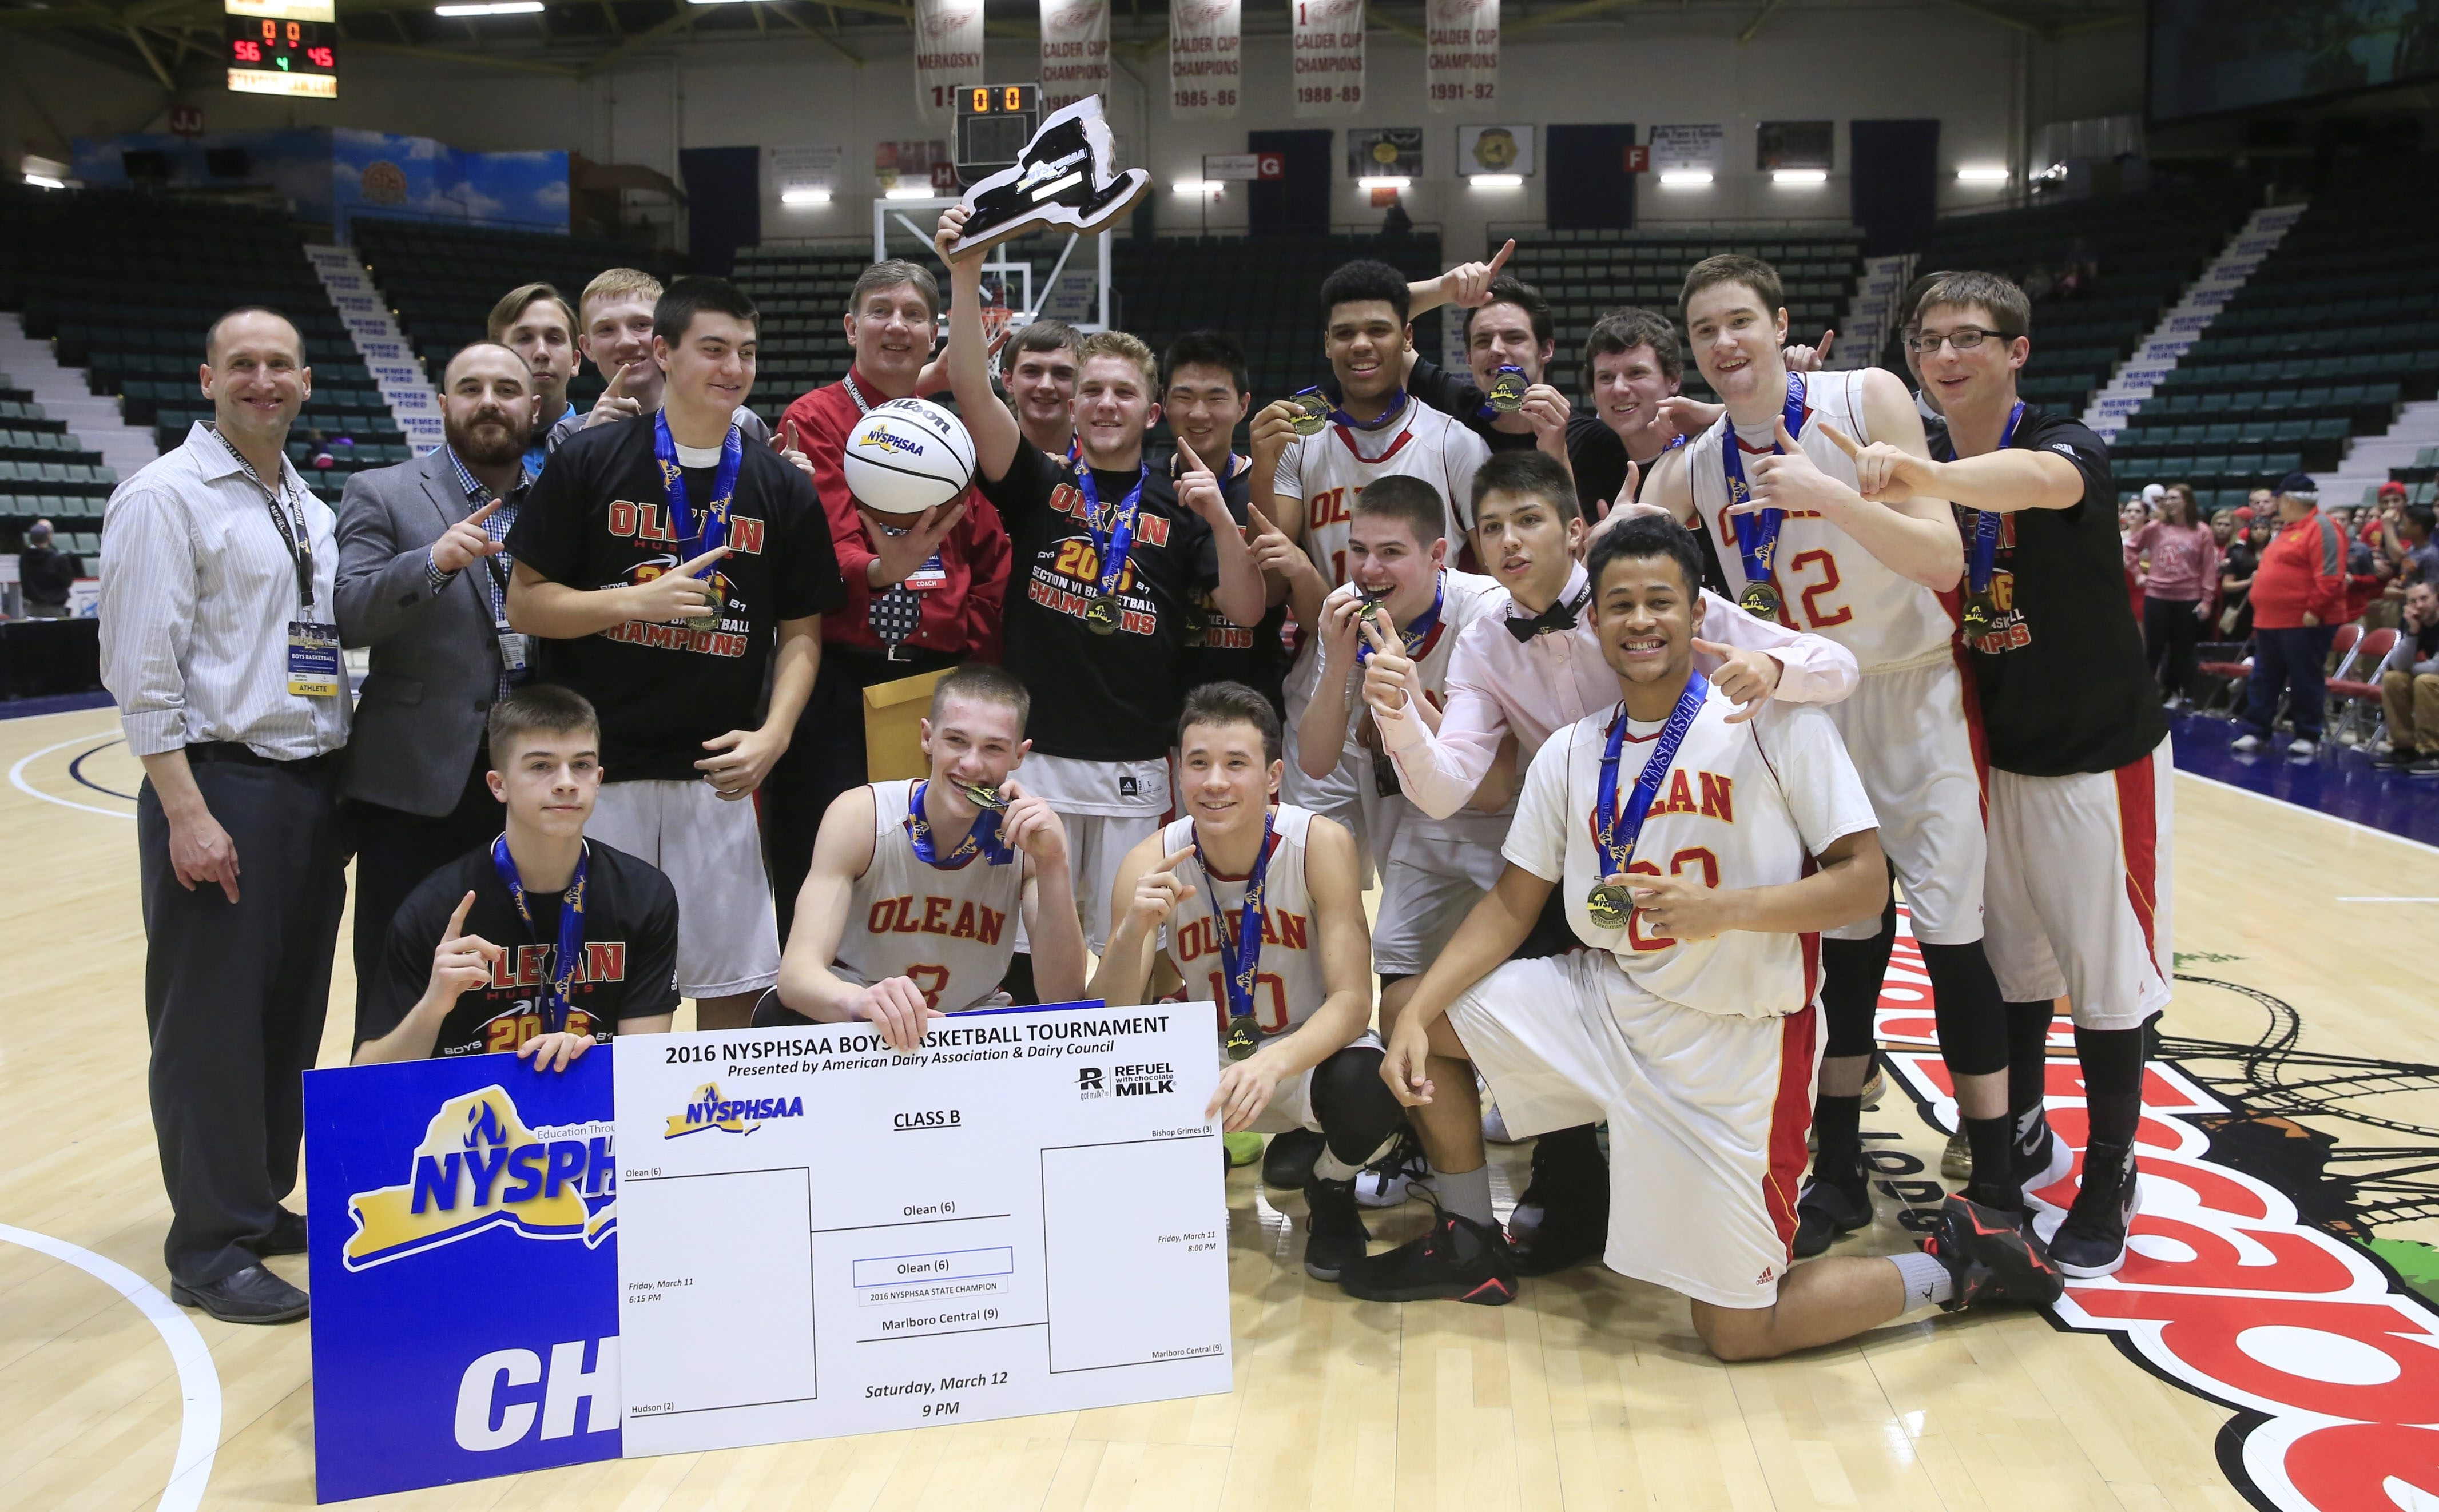 Olean's basketball Huskies show off their rewards for winning the State Public Schools Class B title on Saturday in Glens Falls.